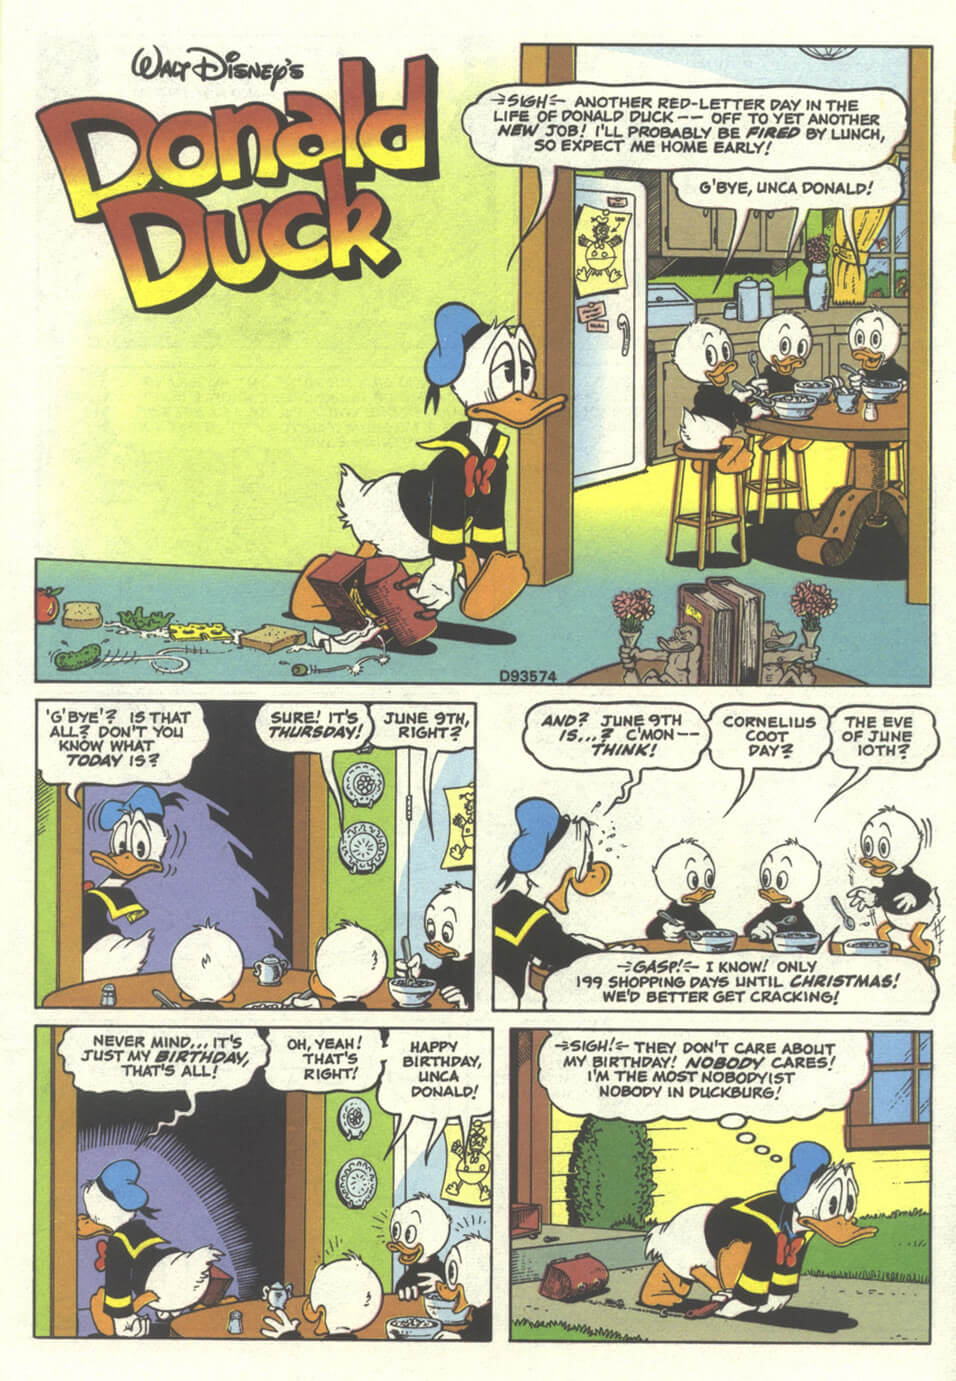 The Duck Who Never Was first page